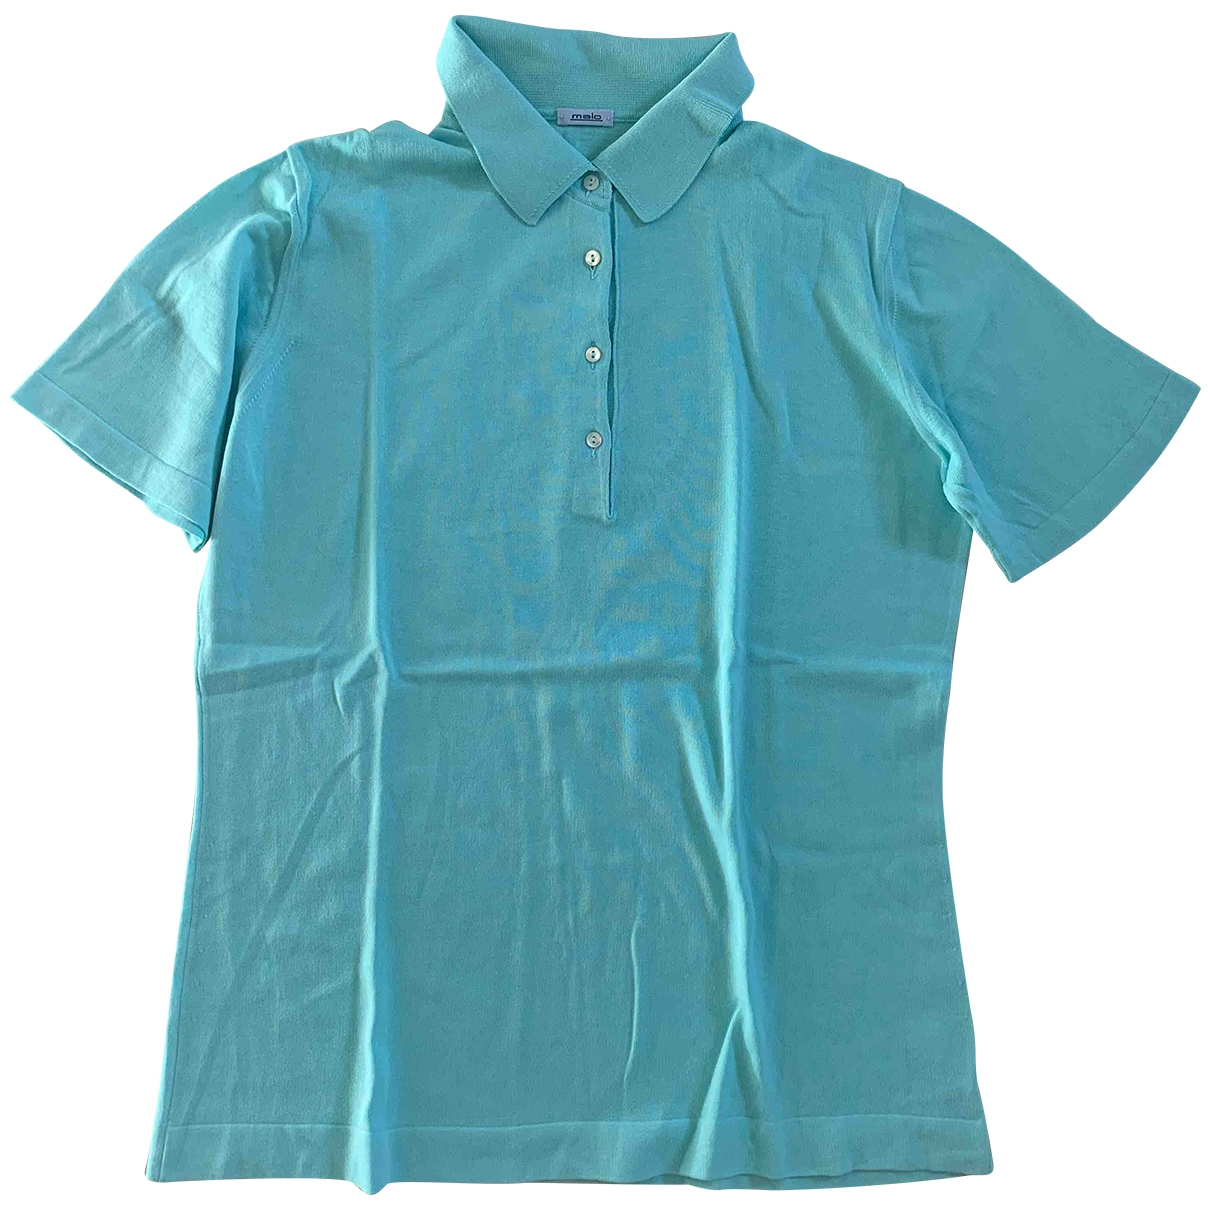 Malo \N Turquoise Cotton  top for Women 46 IT